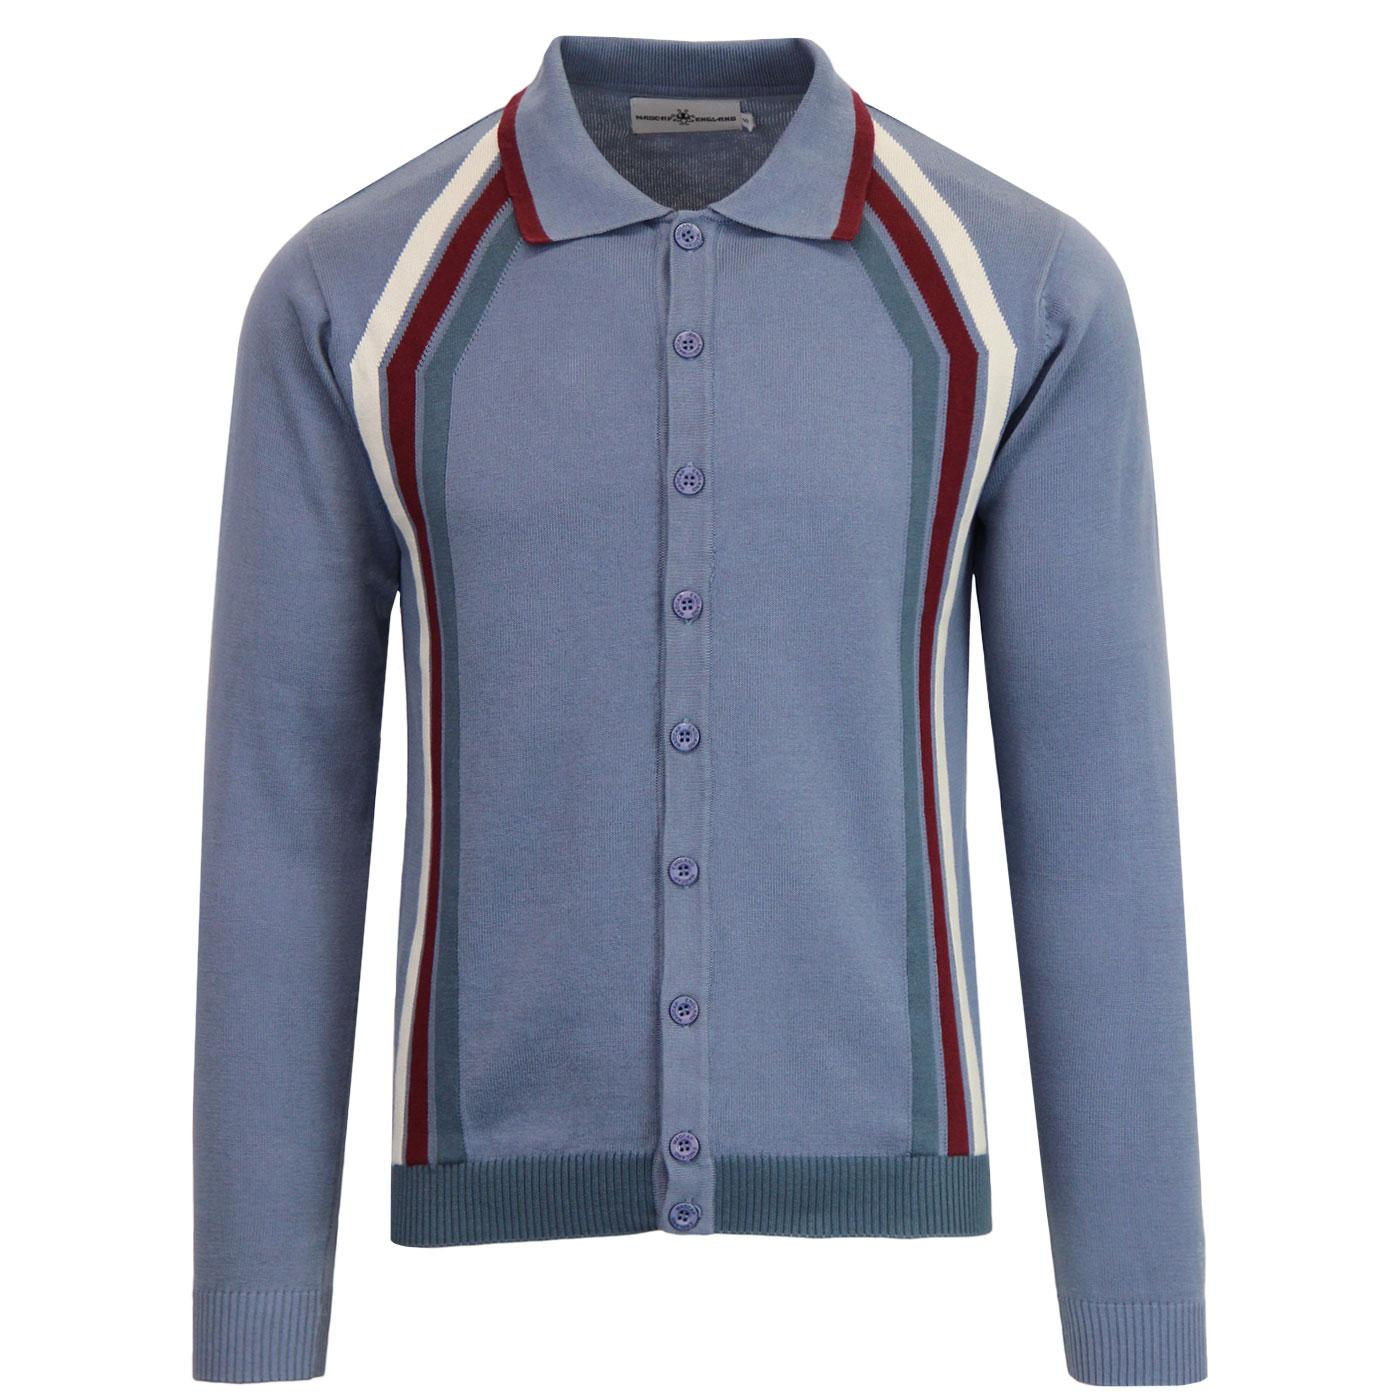 Madcap England Blast Men's 1960s Mod Stripe Knit Polo Cardigan in Flintstone